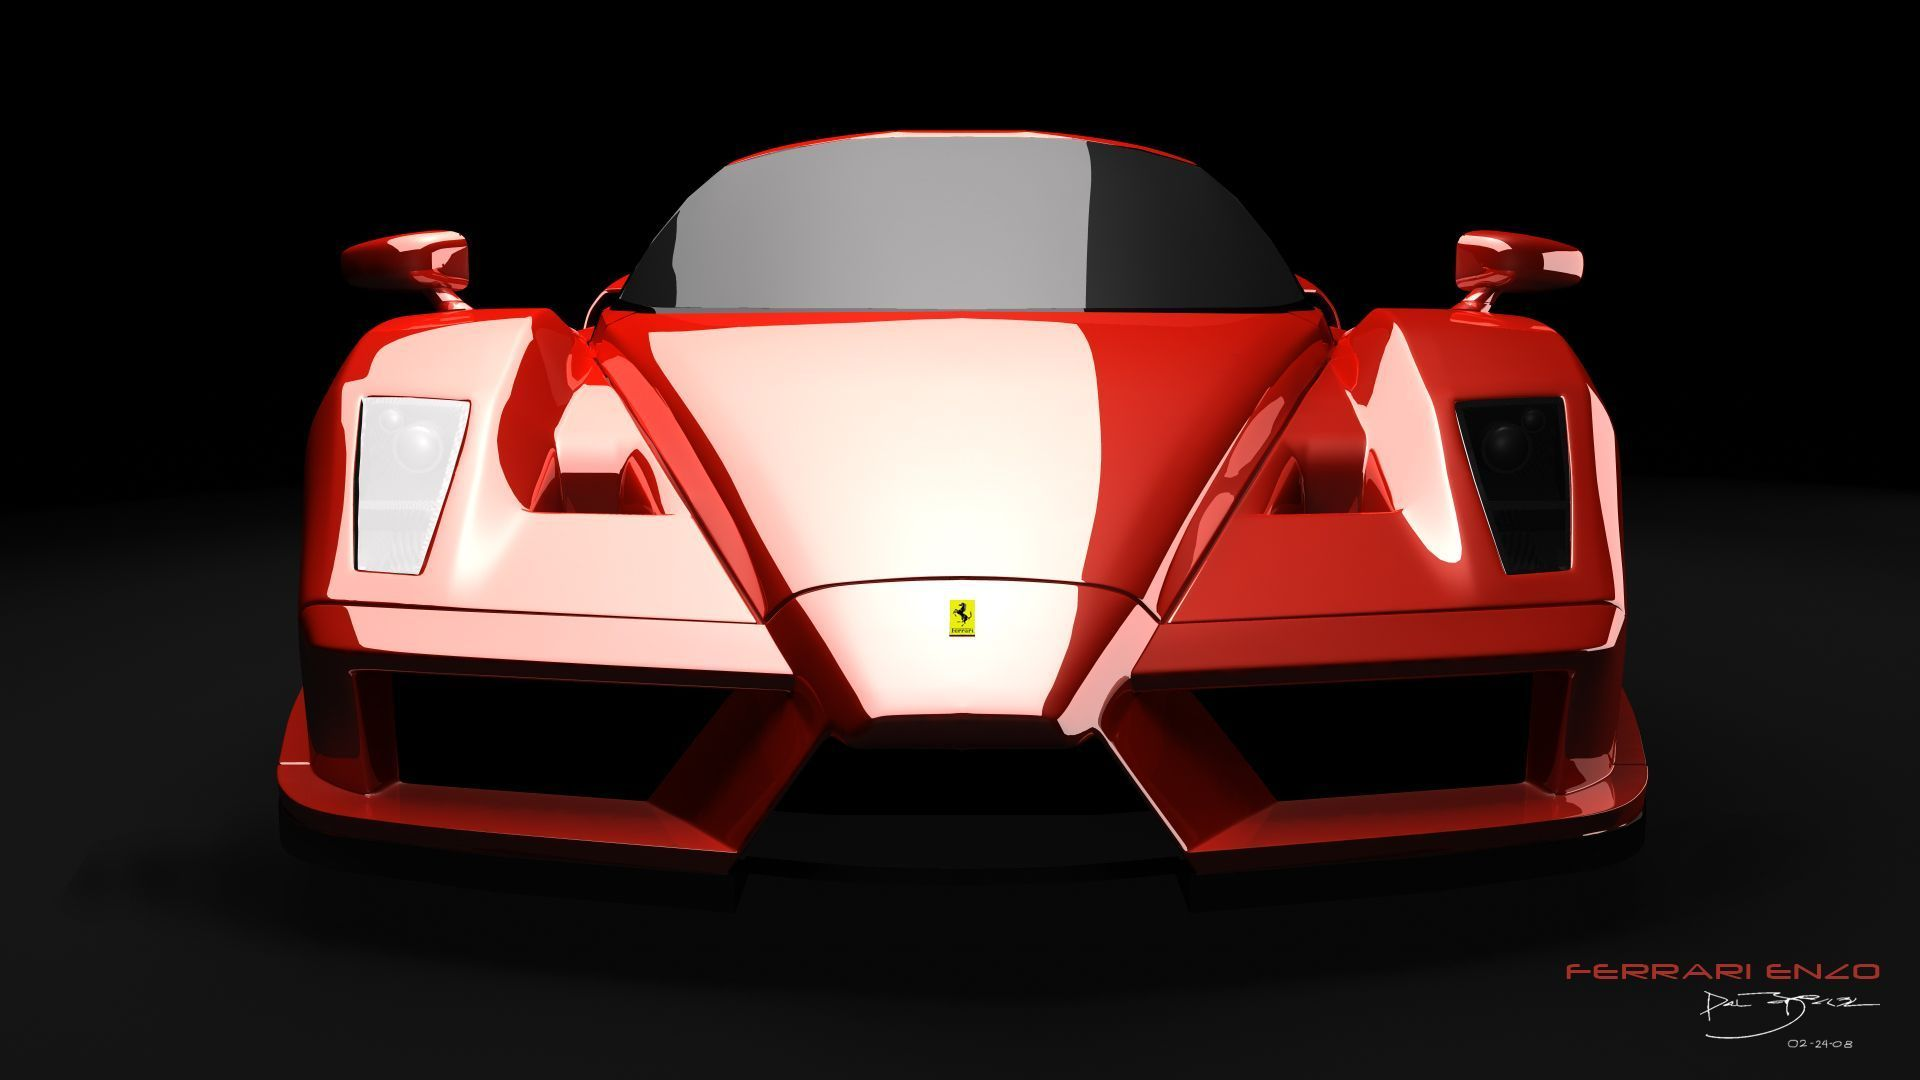 30 Amazing Ferrari Wallpapers In High Quality Ngaire Lowdeane